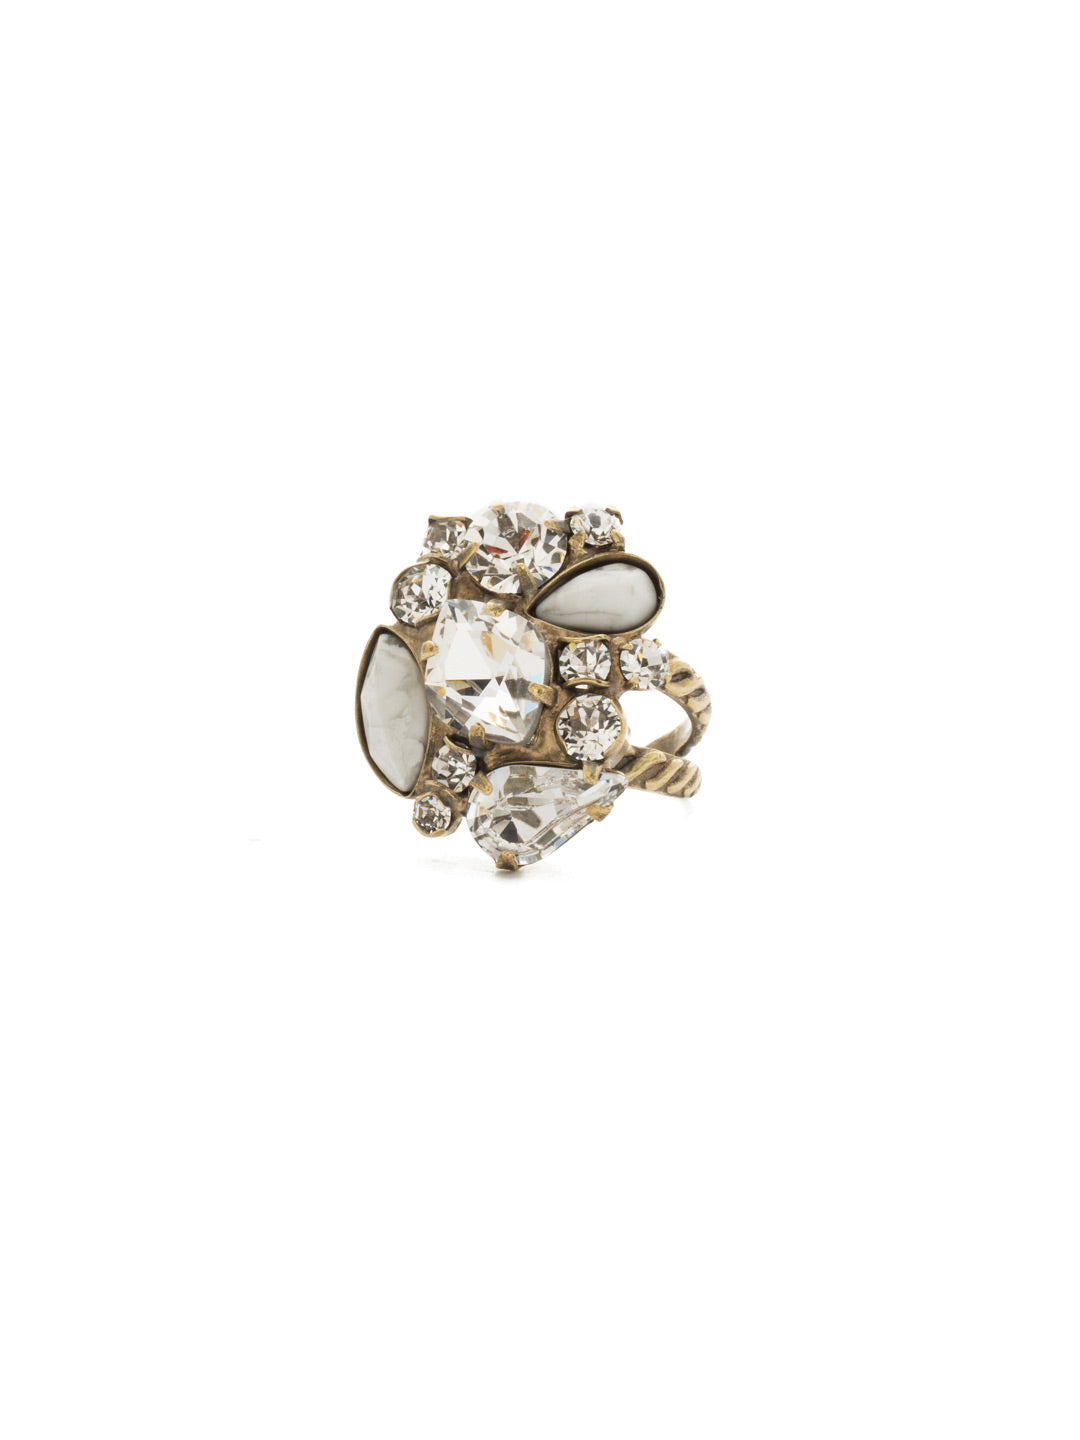 Contemporary Cluster Ring - RDK15AGCRY